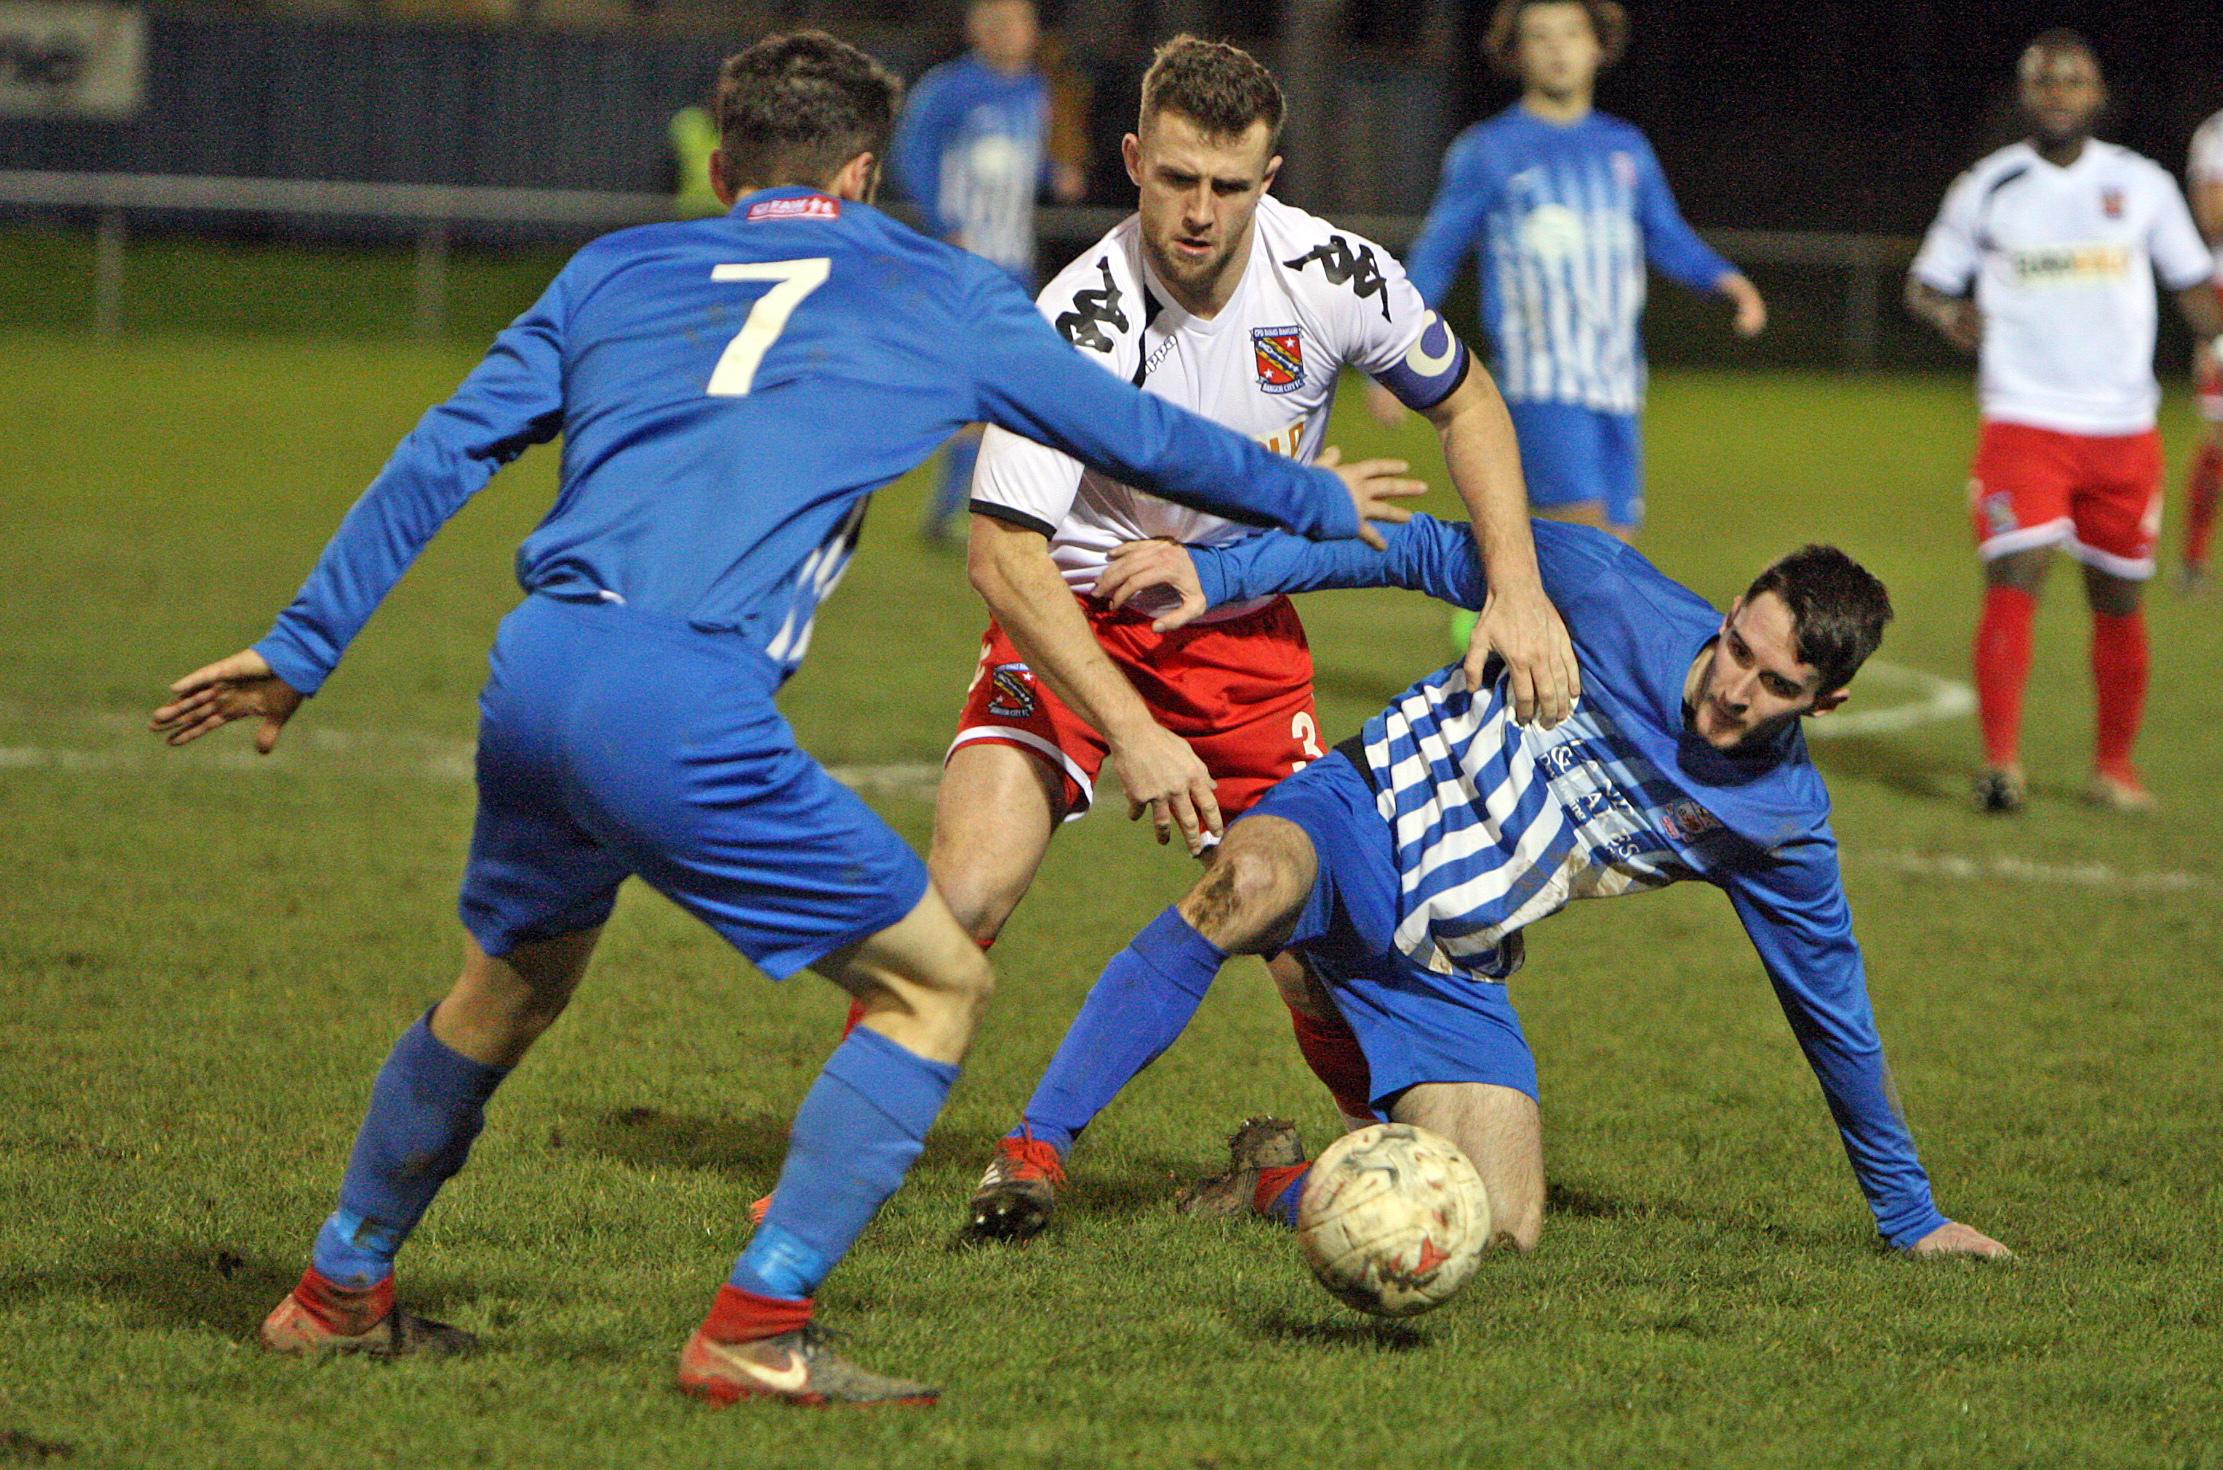 Holyhead Hotspur were beaten at home by Penrhyncoch (Photo by Richard Birch)